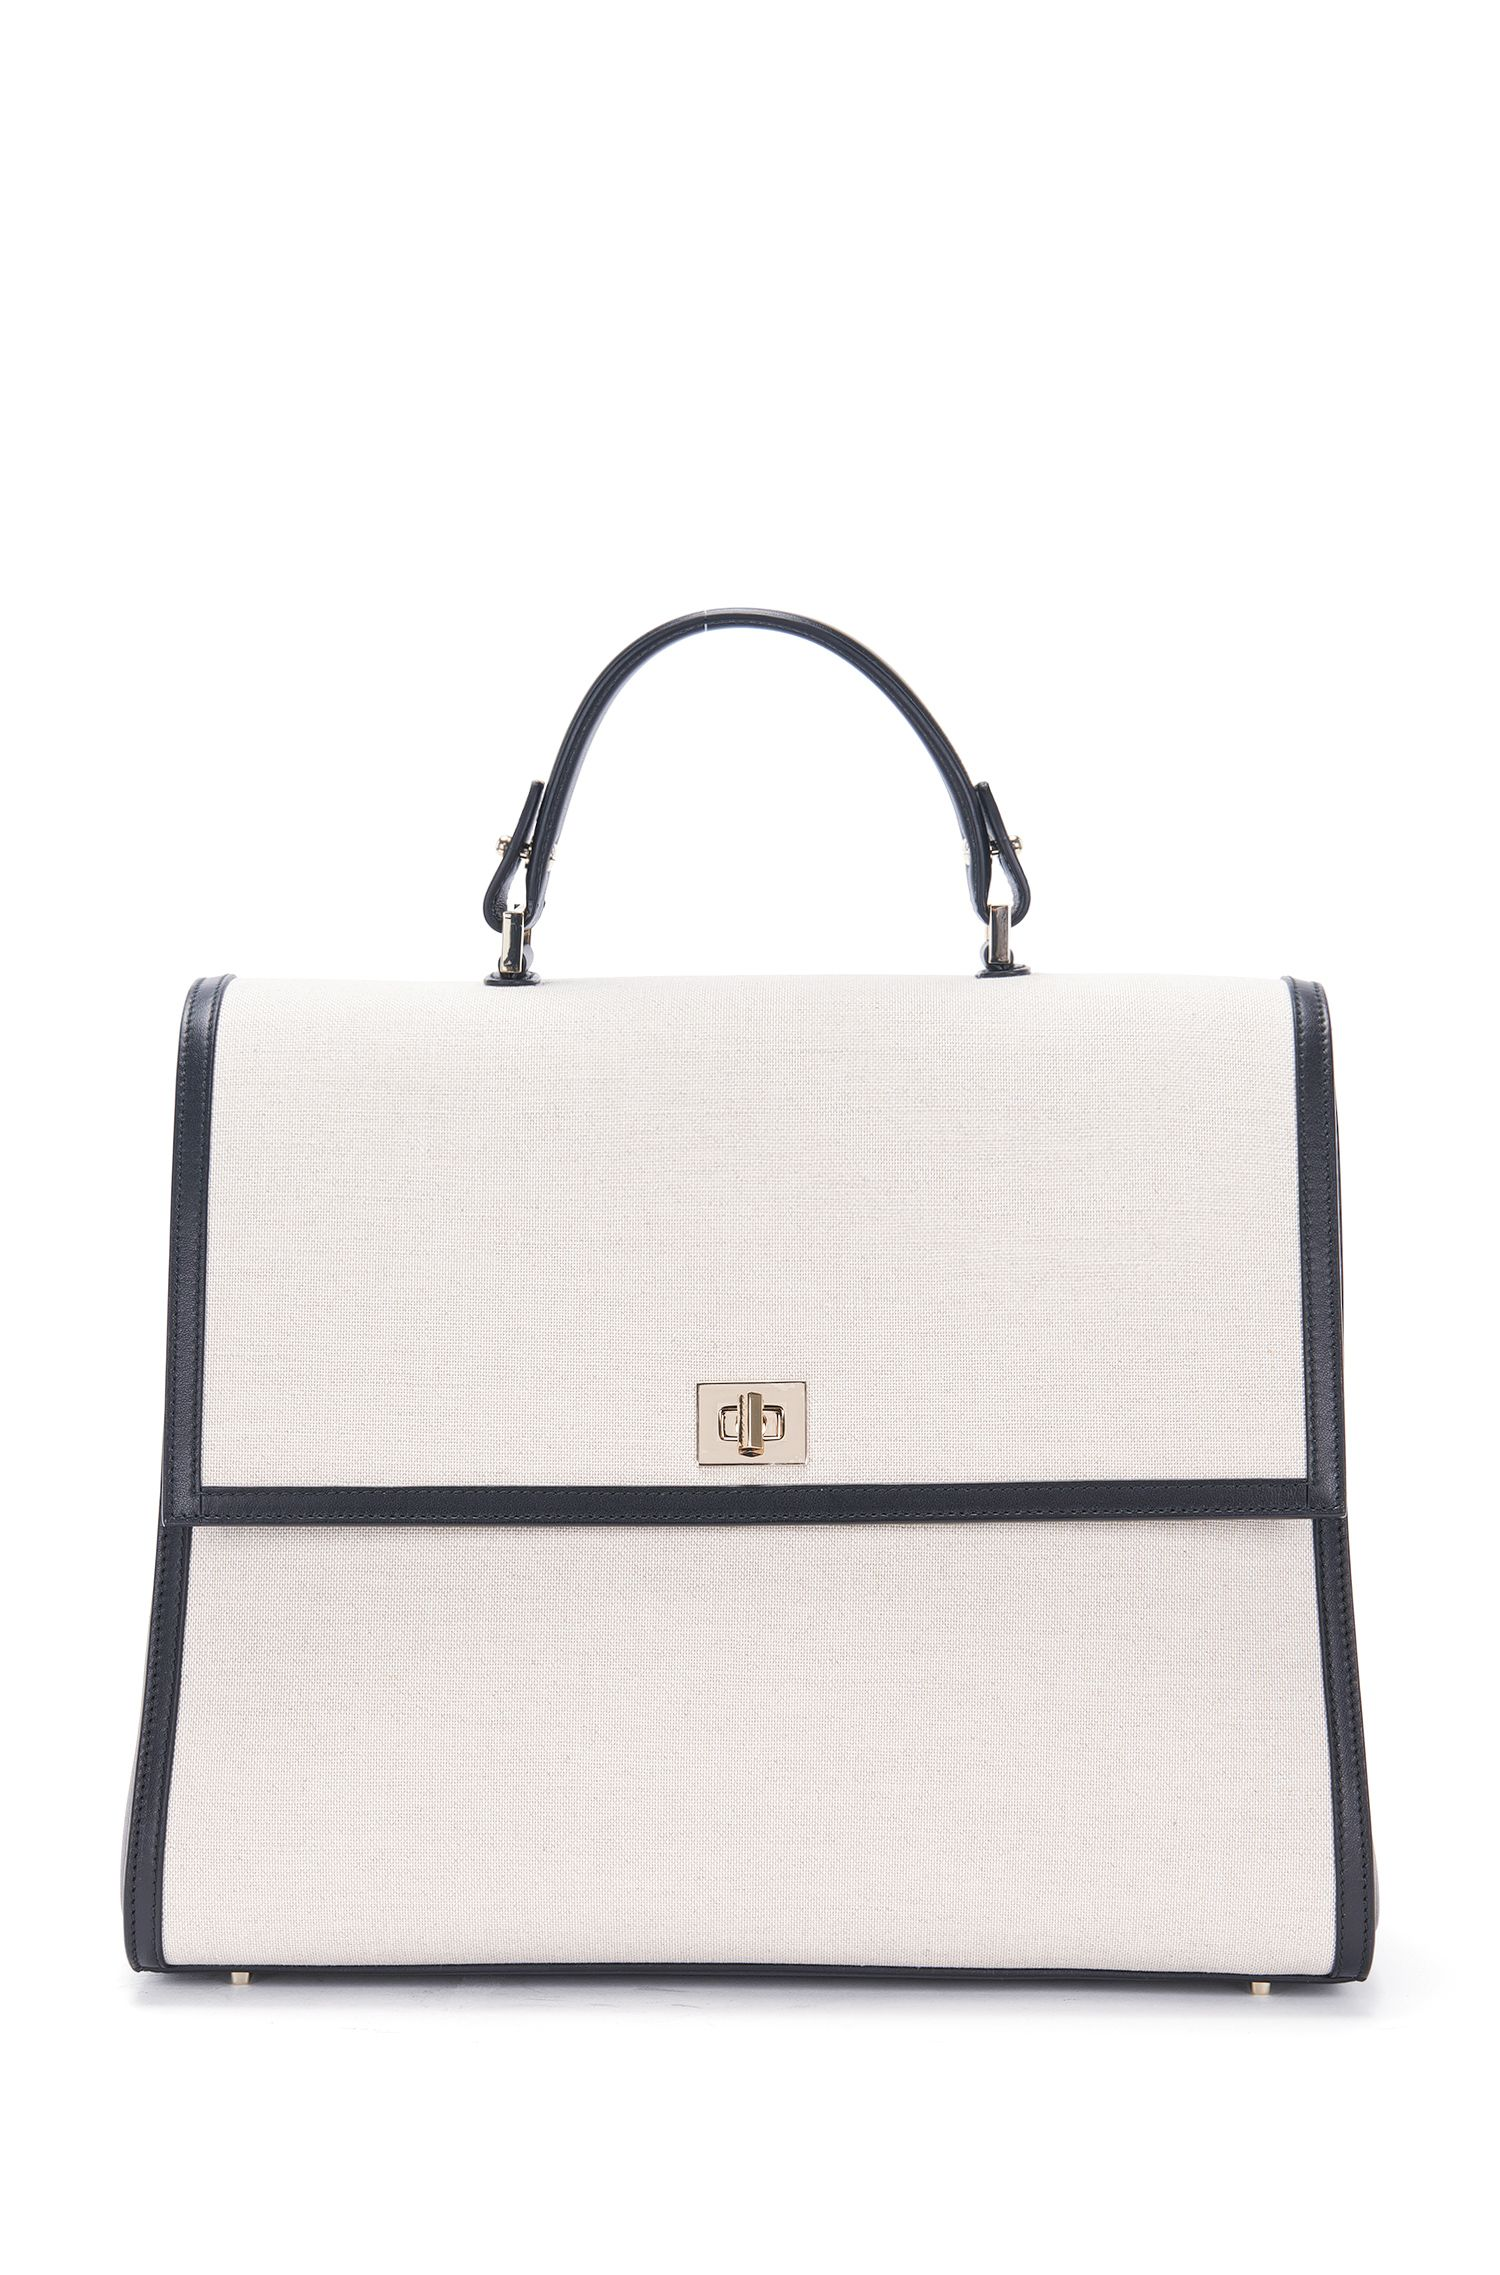 'BOSS Bespoke TH M SC' | Cotton Linen Leather Handbag, Detachable Strap